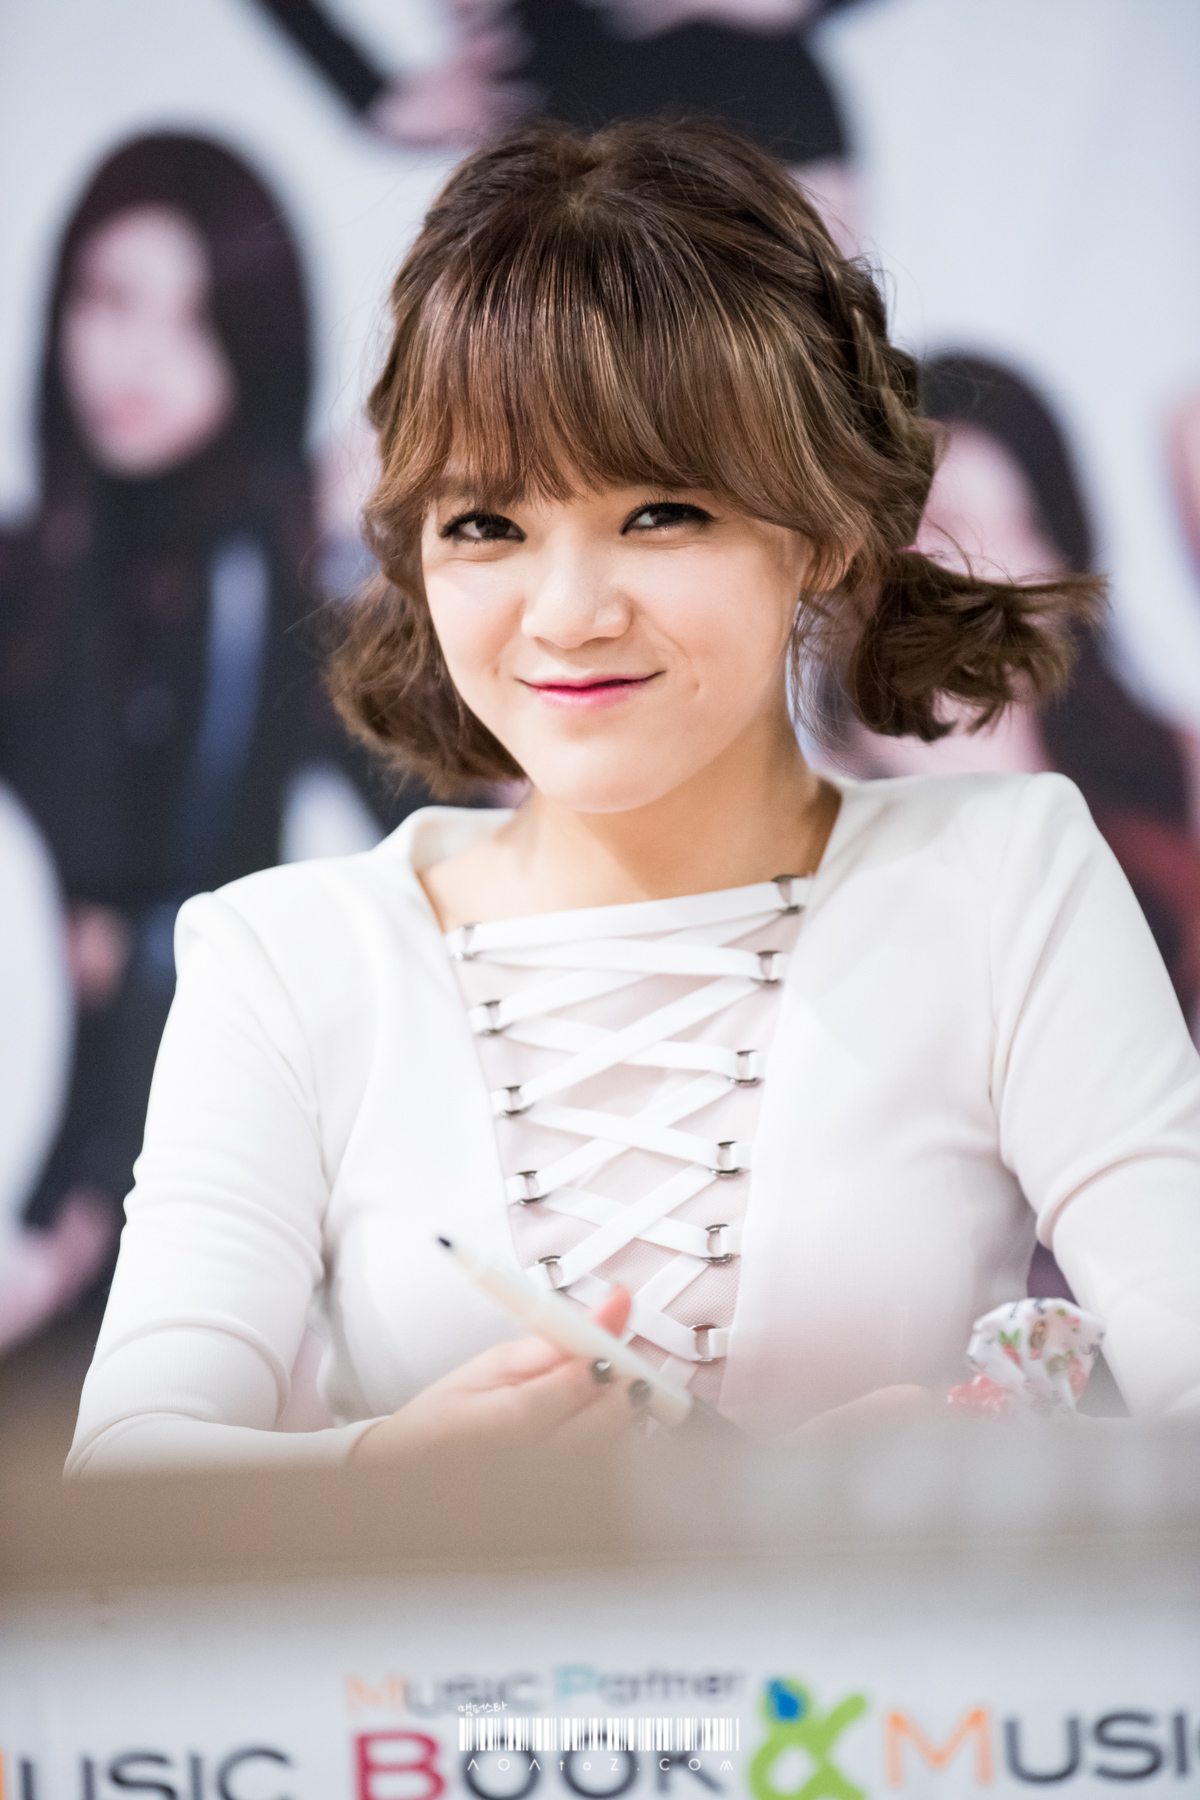 Shin Jimin Android Iphone Wallpaper 4502 Asiachan Kpop